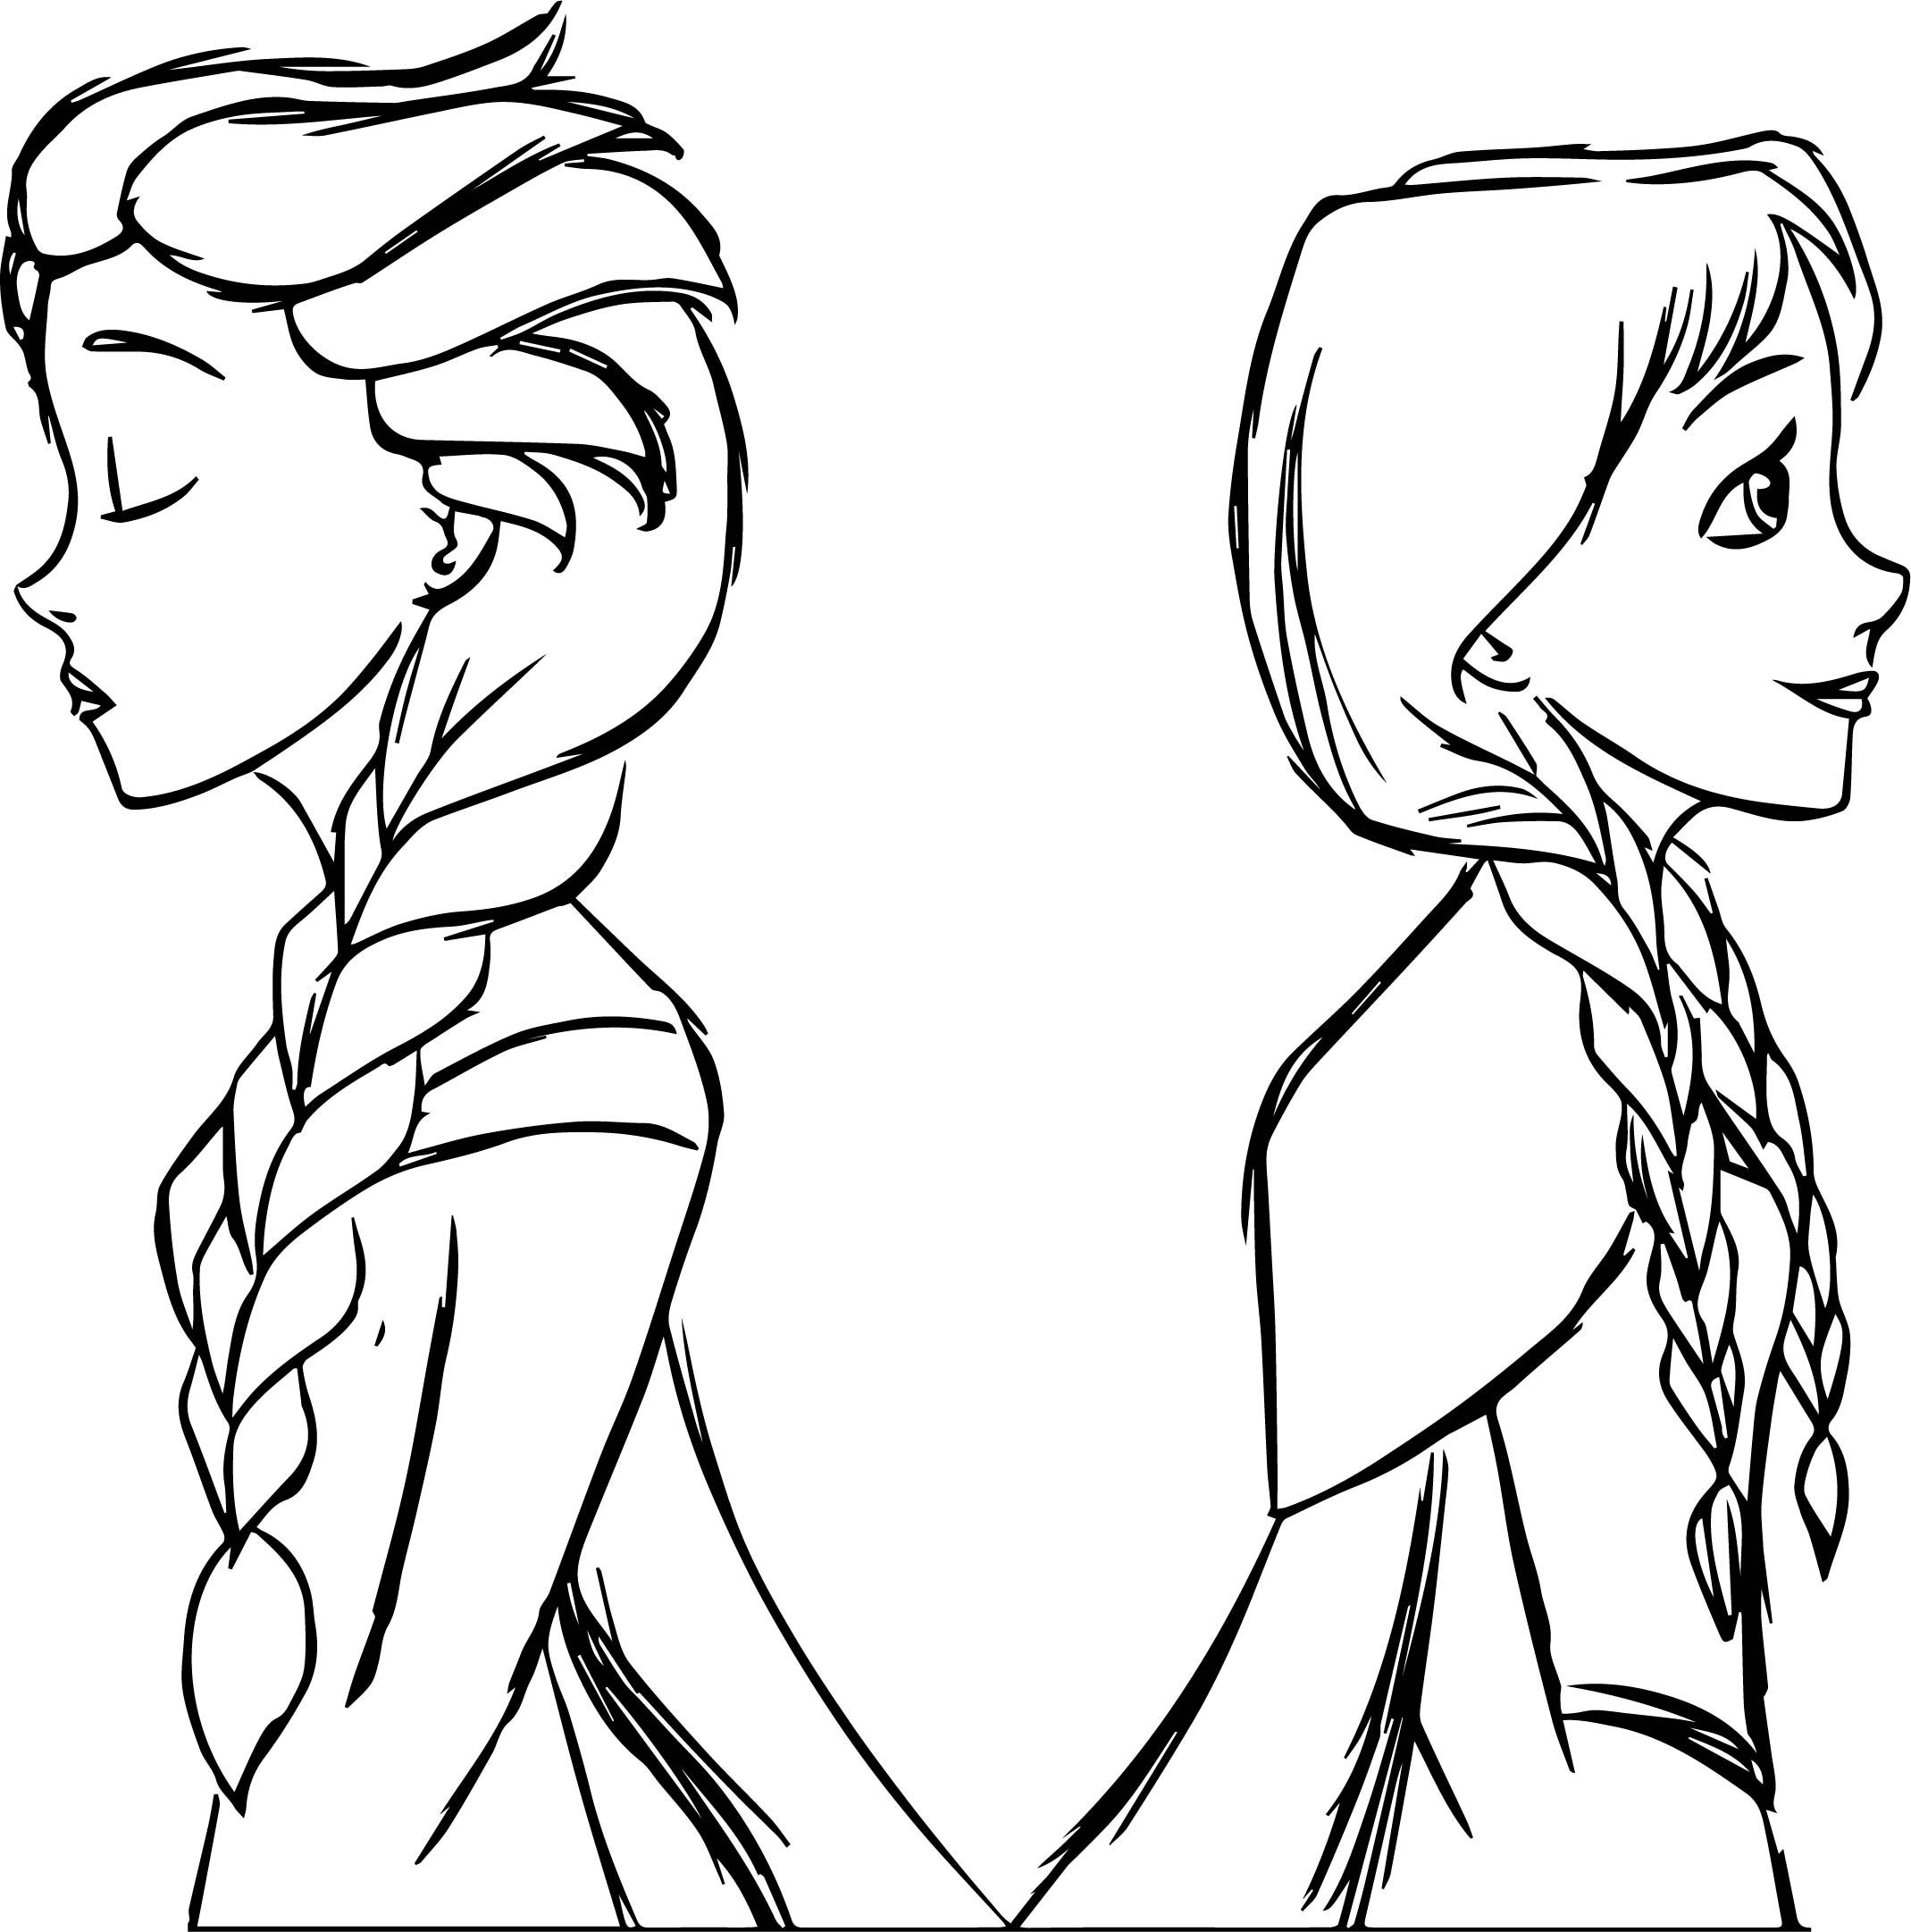 Cool Elsa And Anna Frozen Sketch Coloring Page Frozen Painting Coloring Pages Avengers Coloring